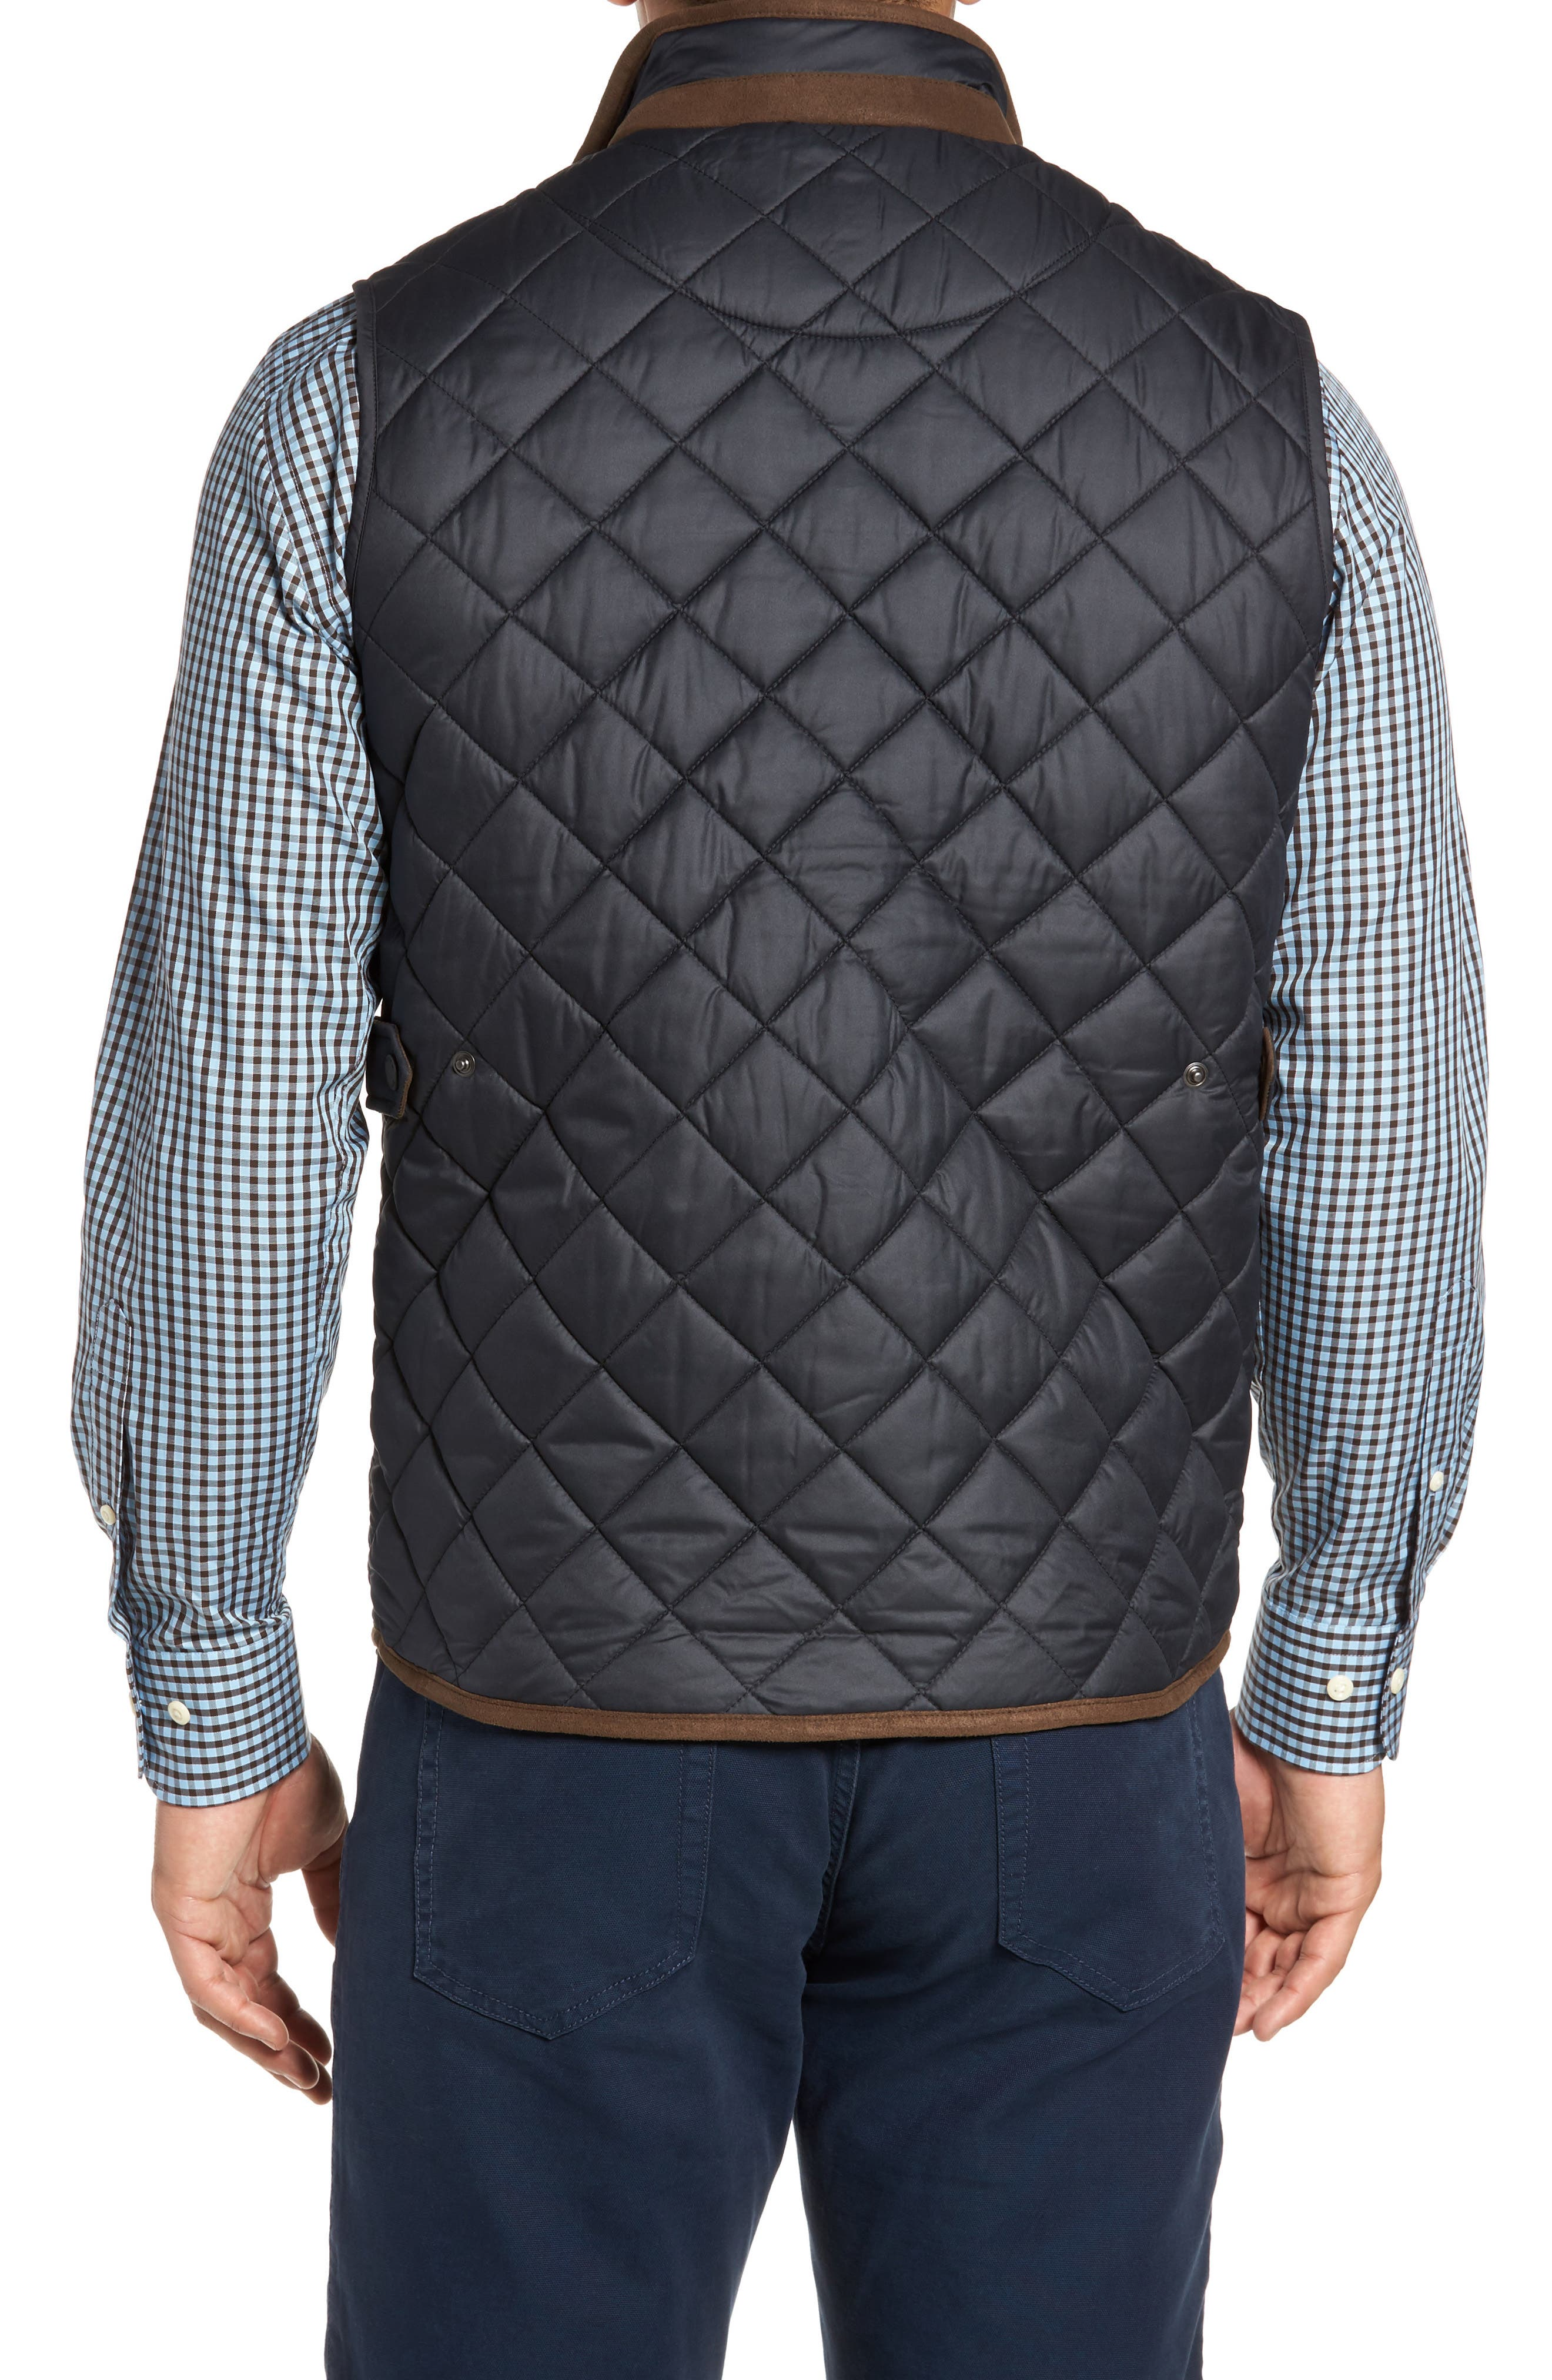 Essex Quilted Vest,                             Alternate thumbnail 2, color,                             001